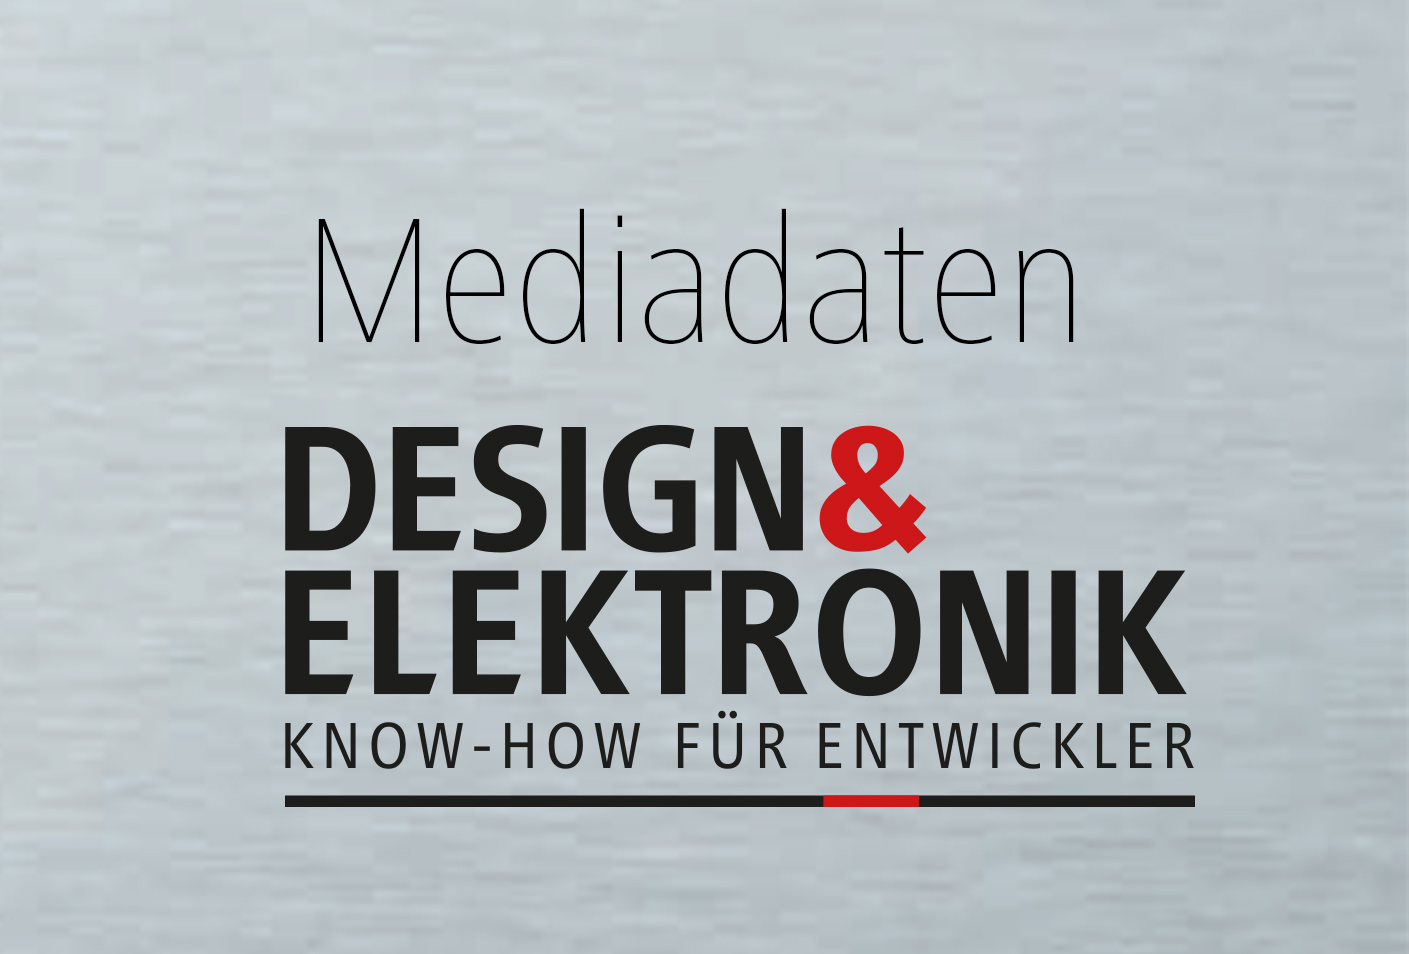 design-elektronik